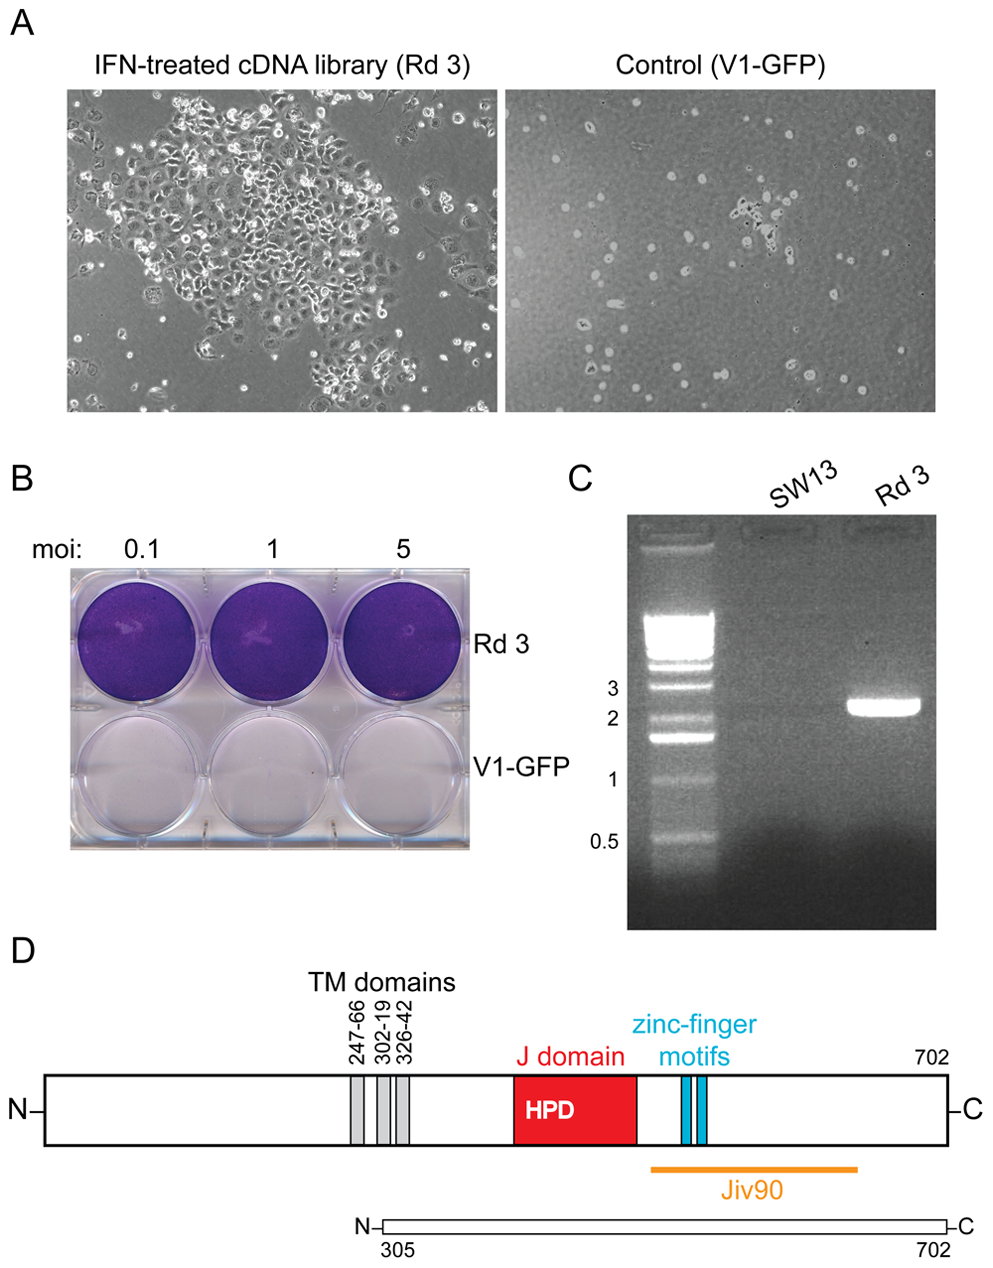 DNAJC14 confers resistance to YFV-induced cell death.